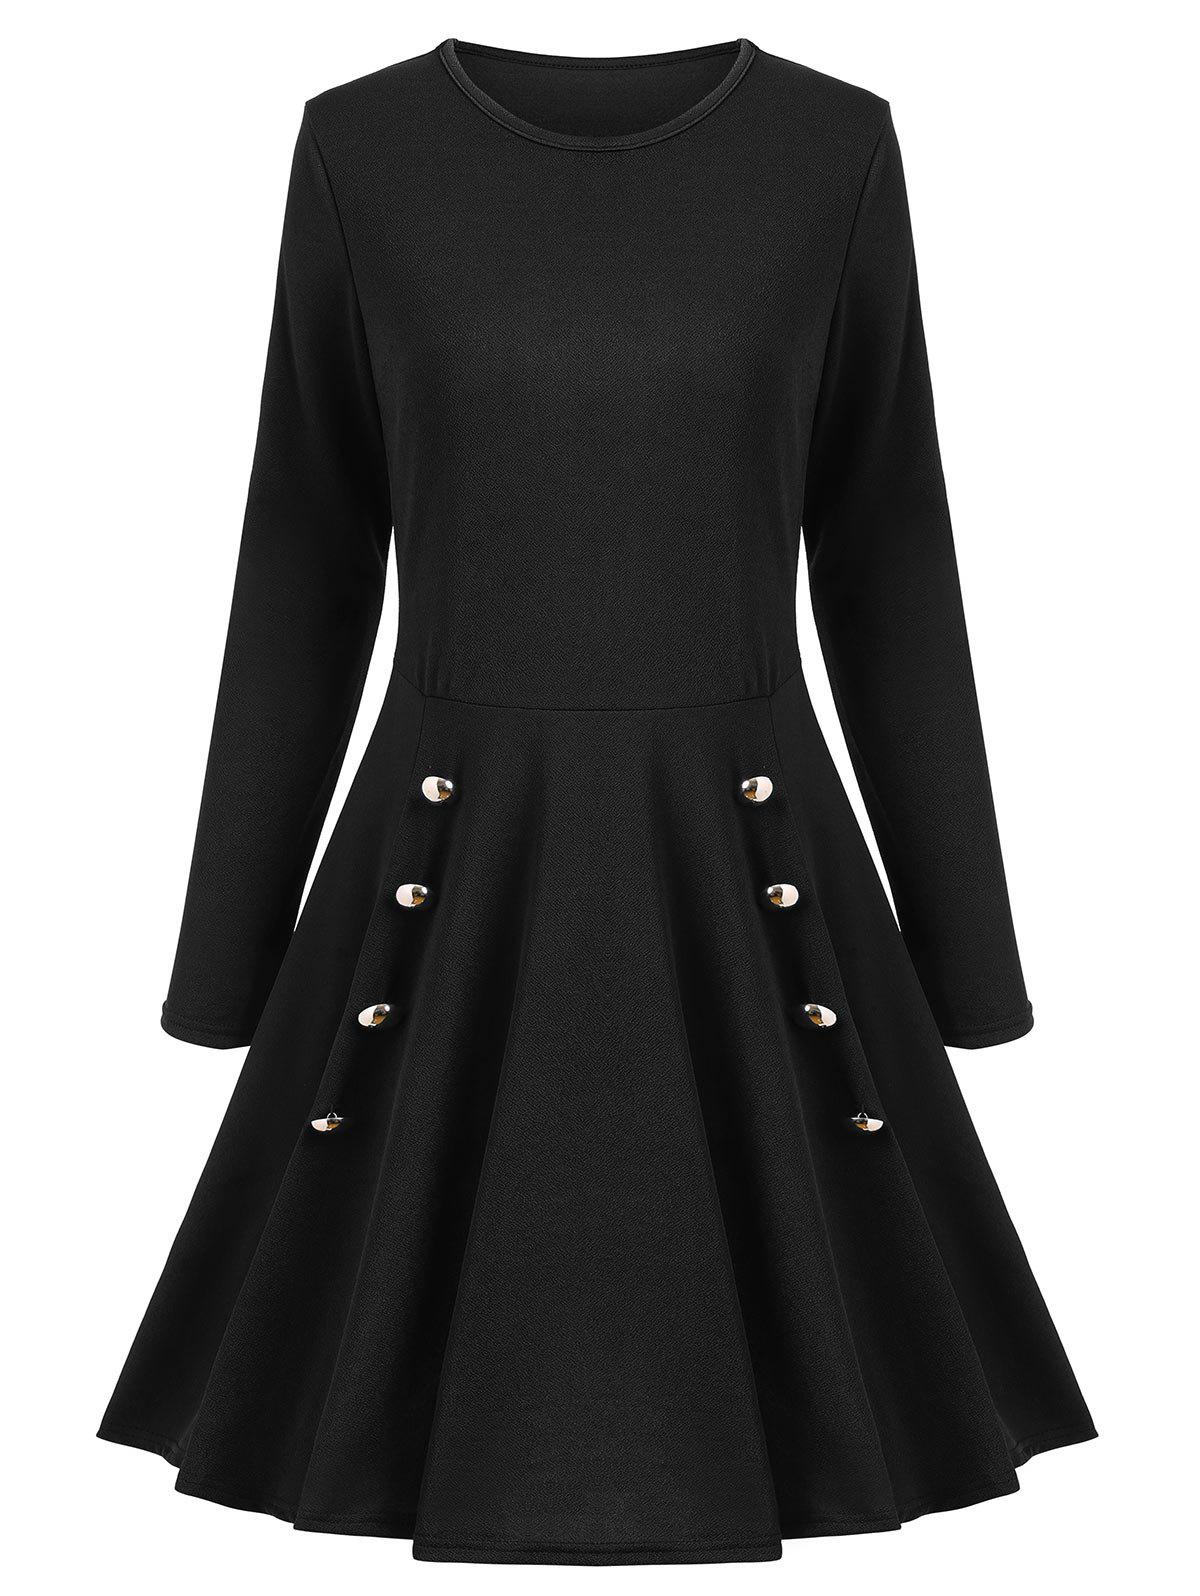 Store Buttoned A Line Long Sleeves Dress